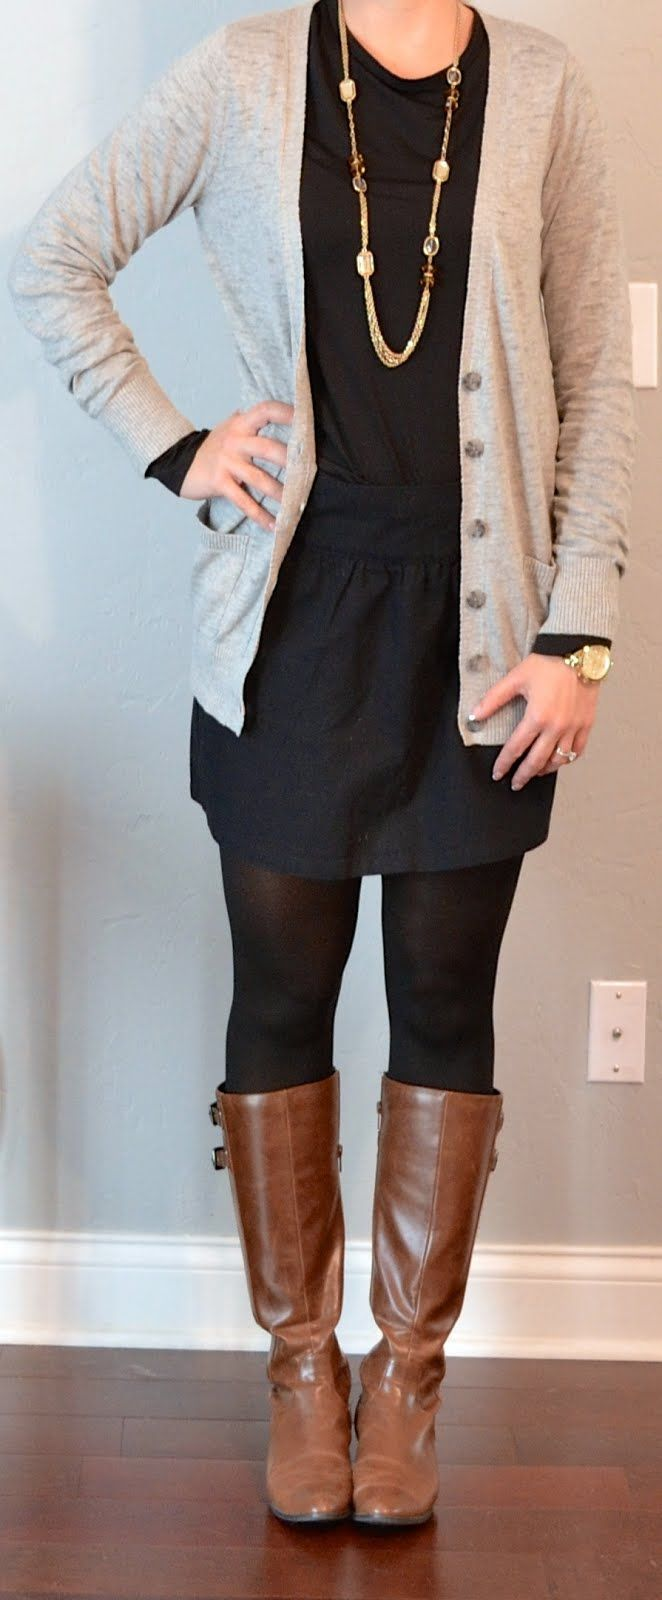 Black tee tucked into black skirt, not sure what cardi...